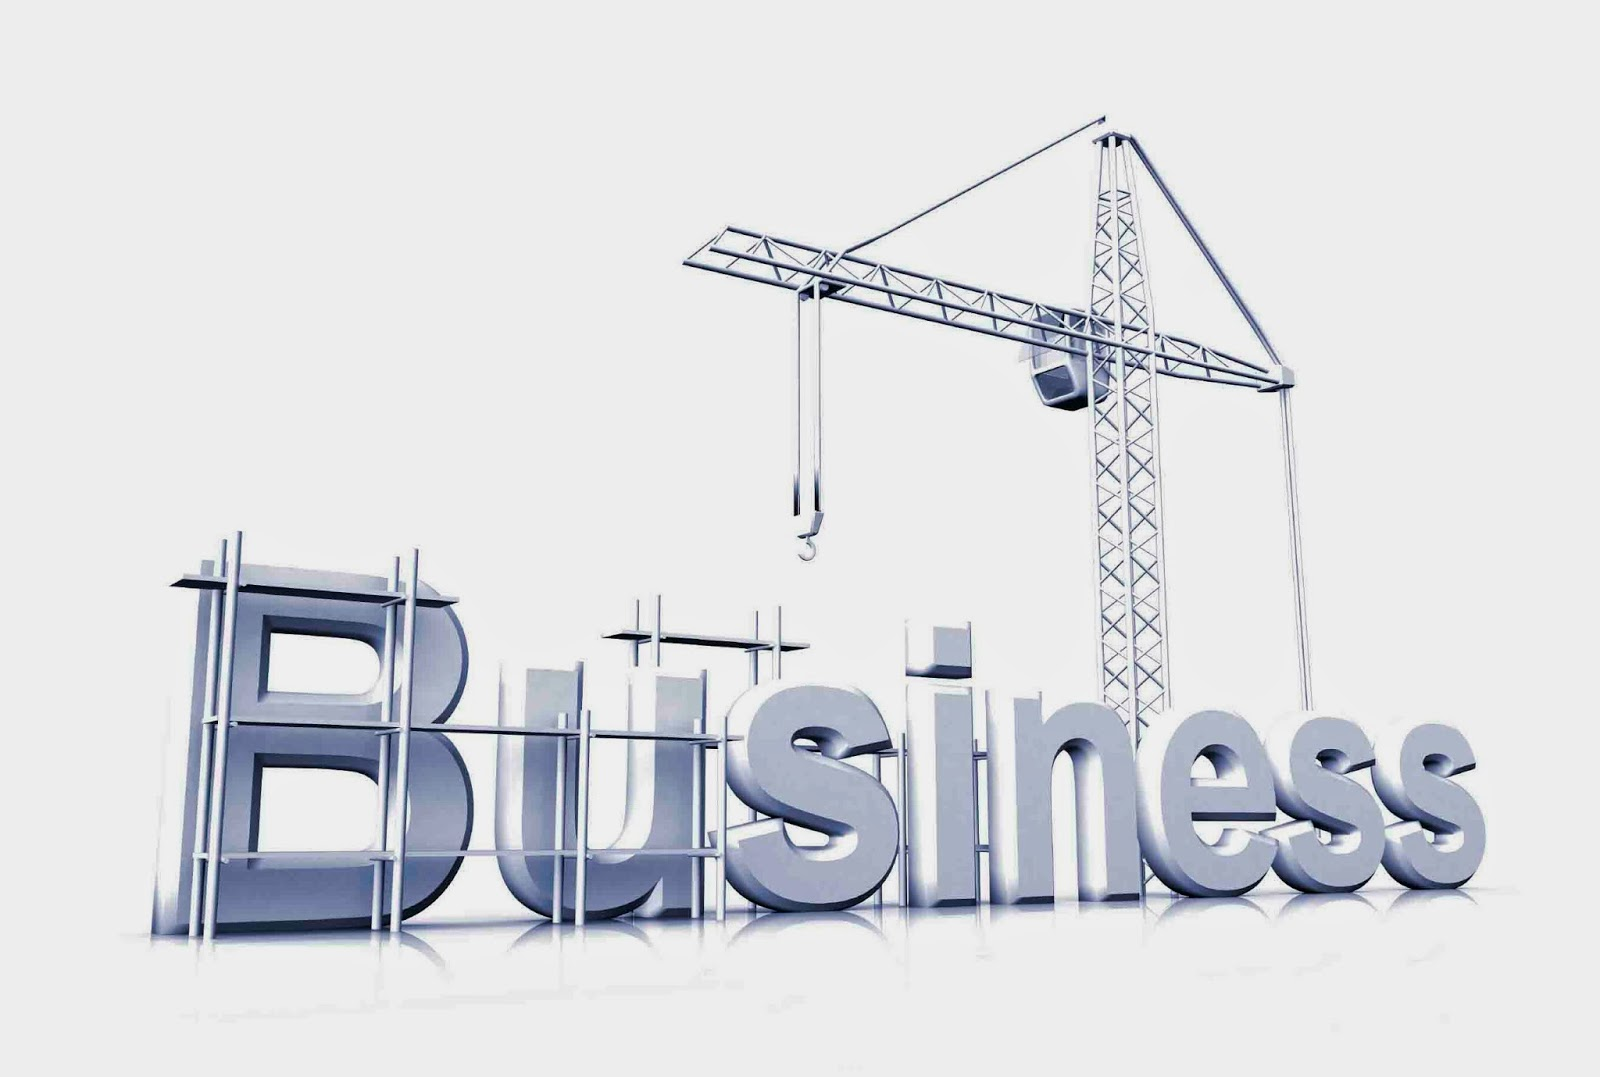 business-kinh-doanh-online-dam-me-thanh-cong-nguyen-thanh-long